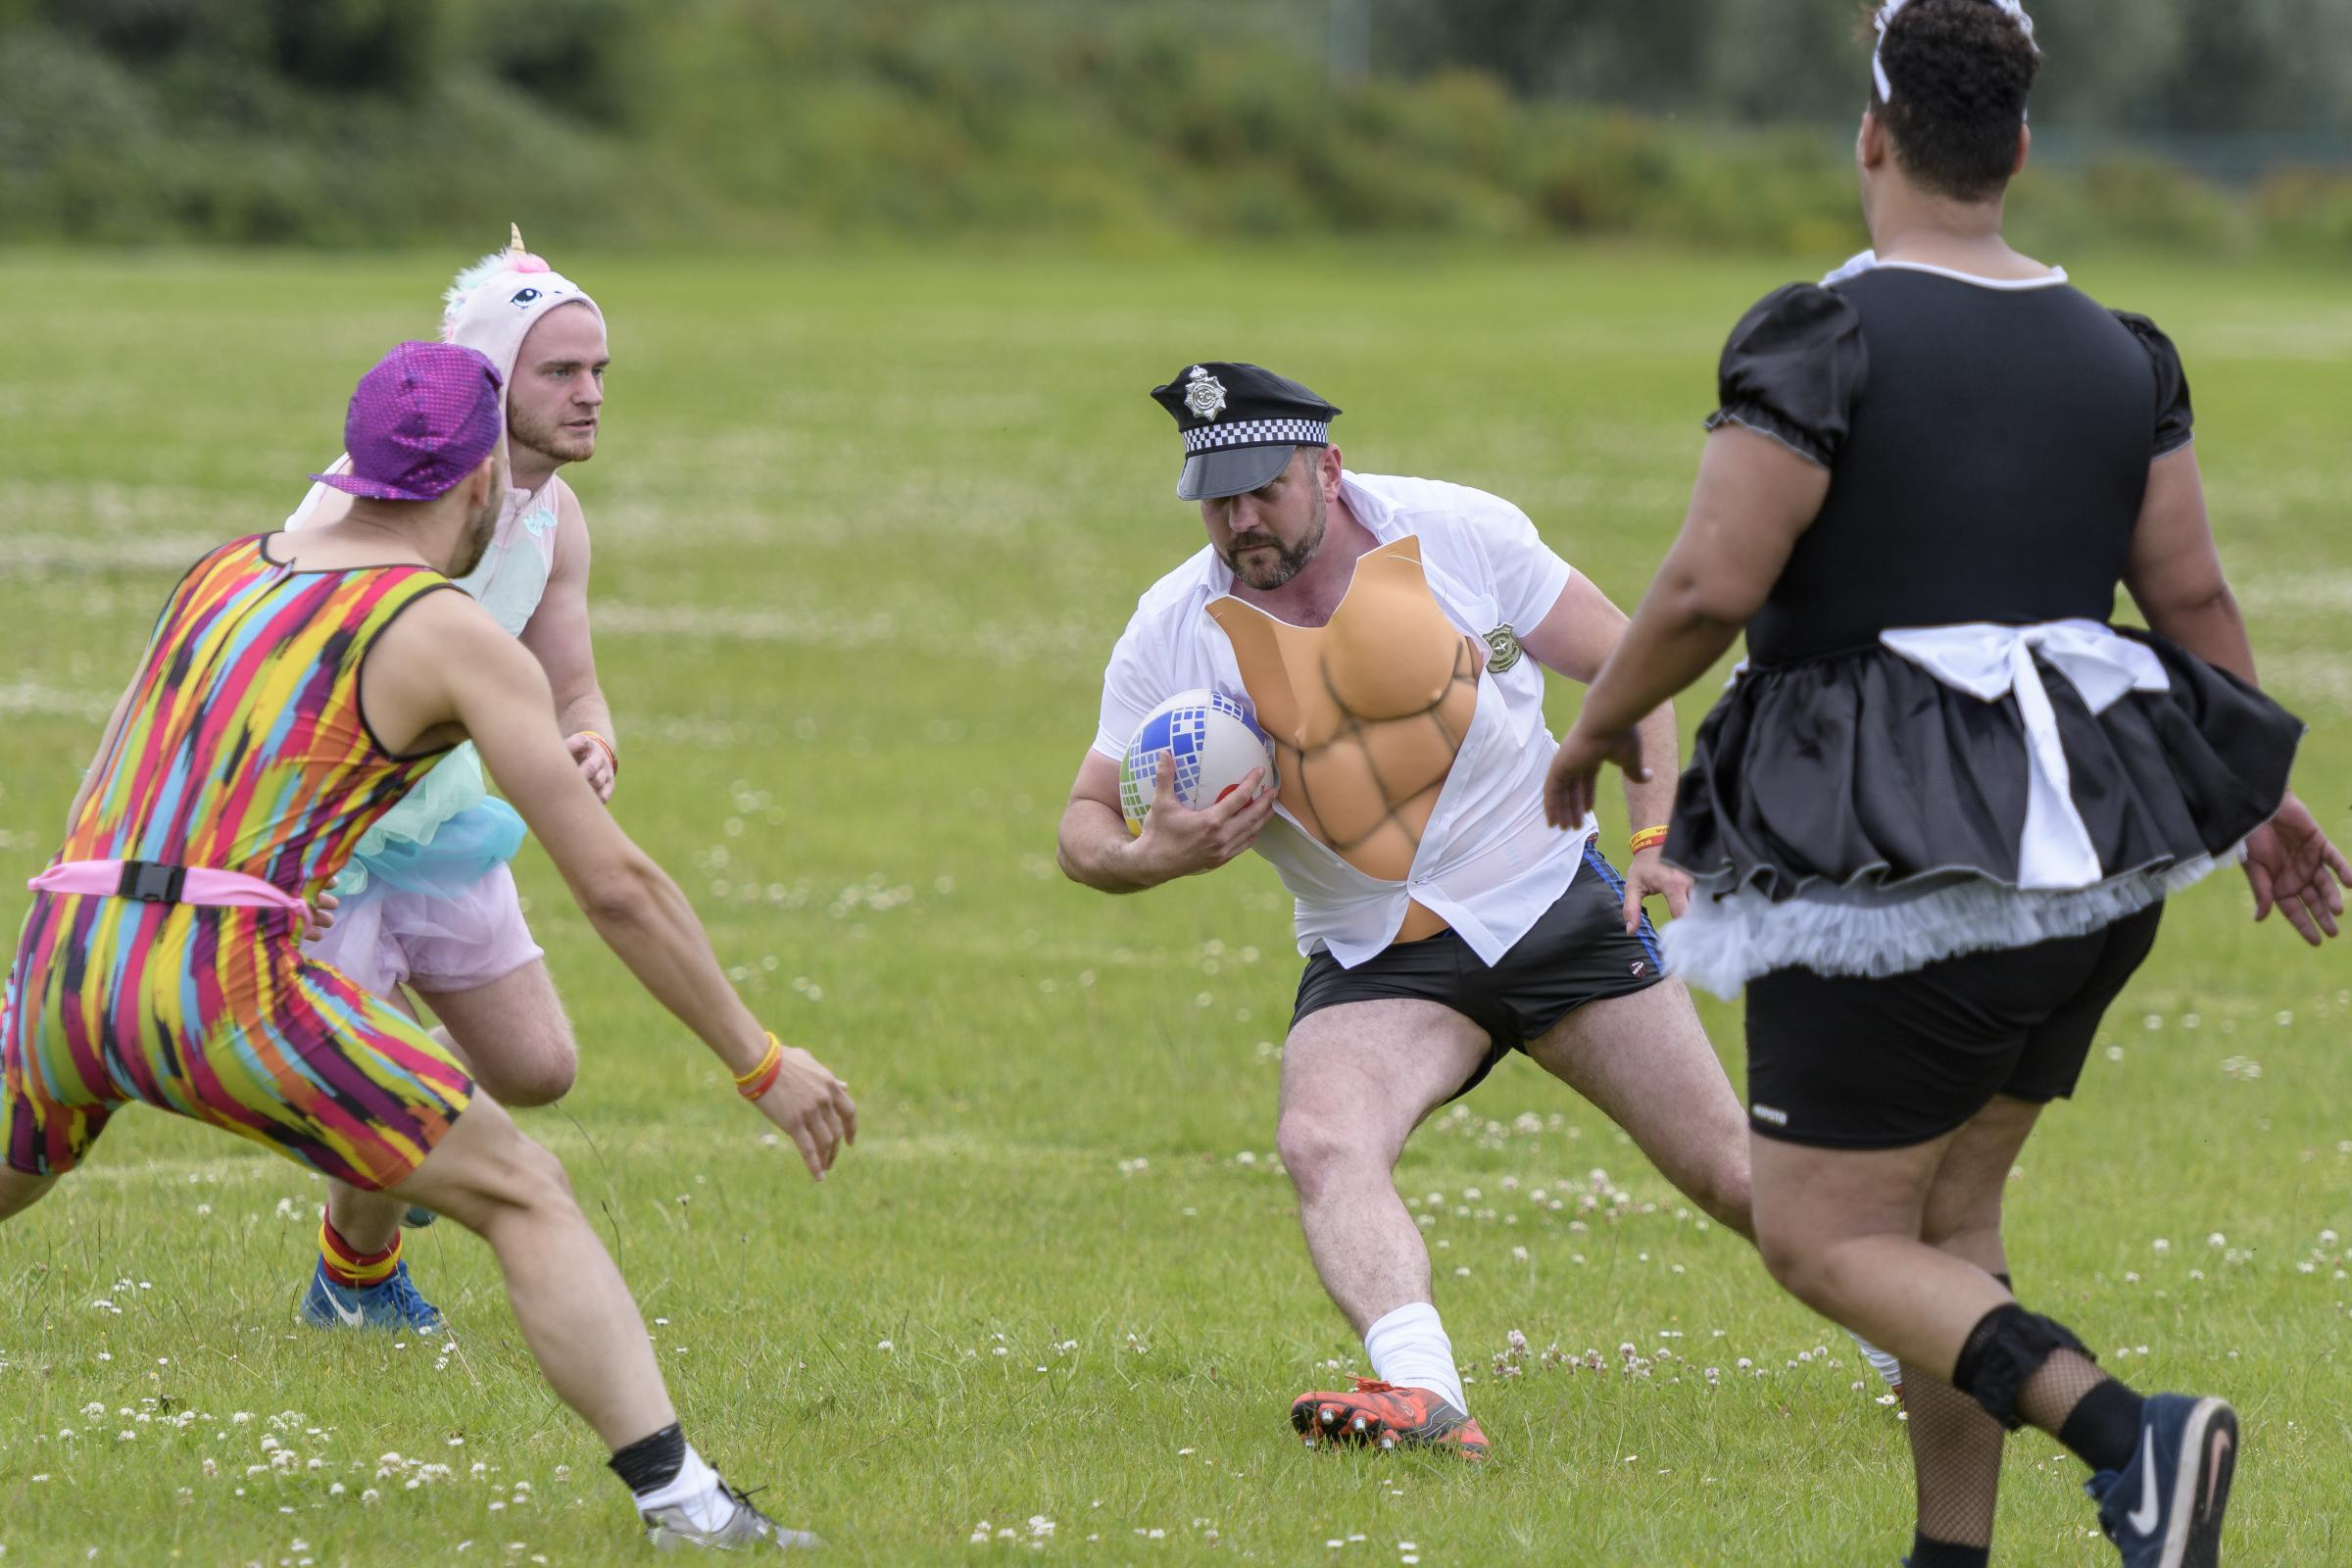 Rugby gay pictures